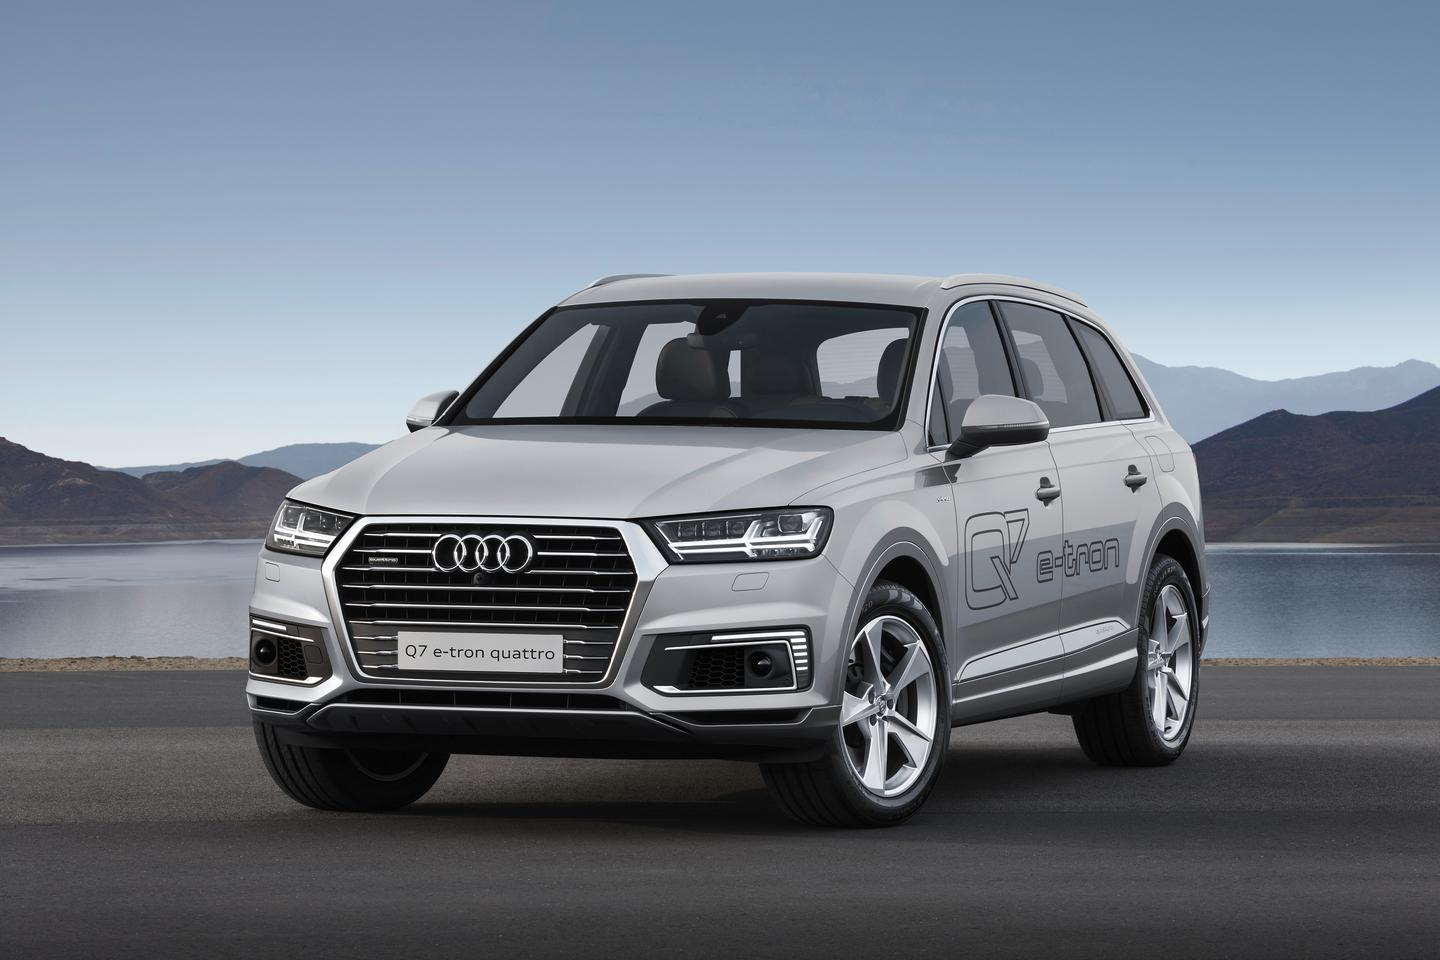 The Q7 hybrid combines an ICE with an electric motor